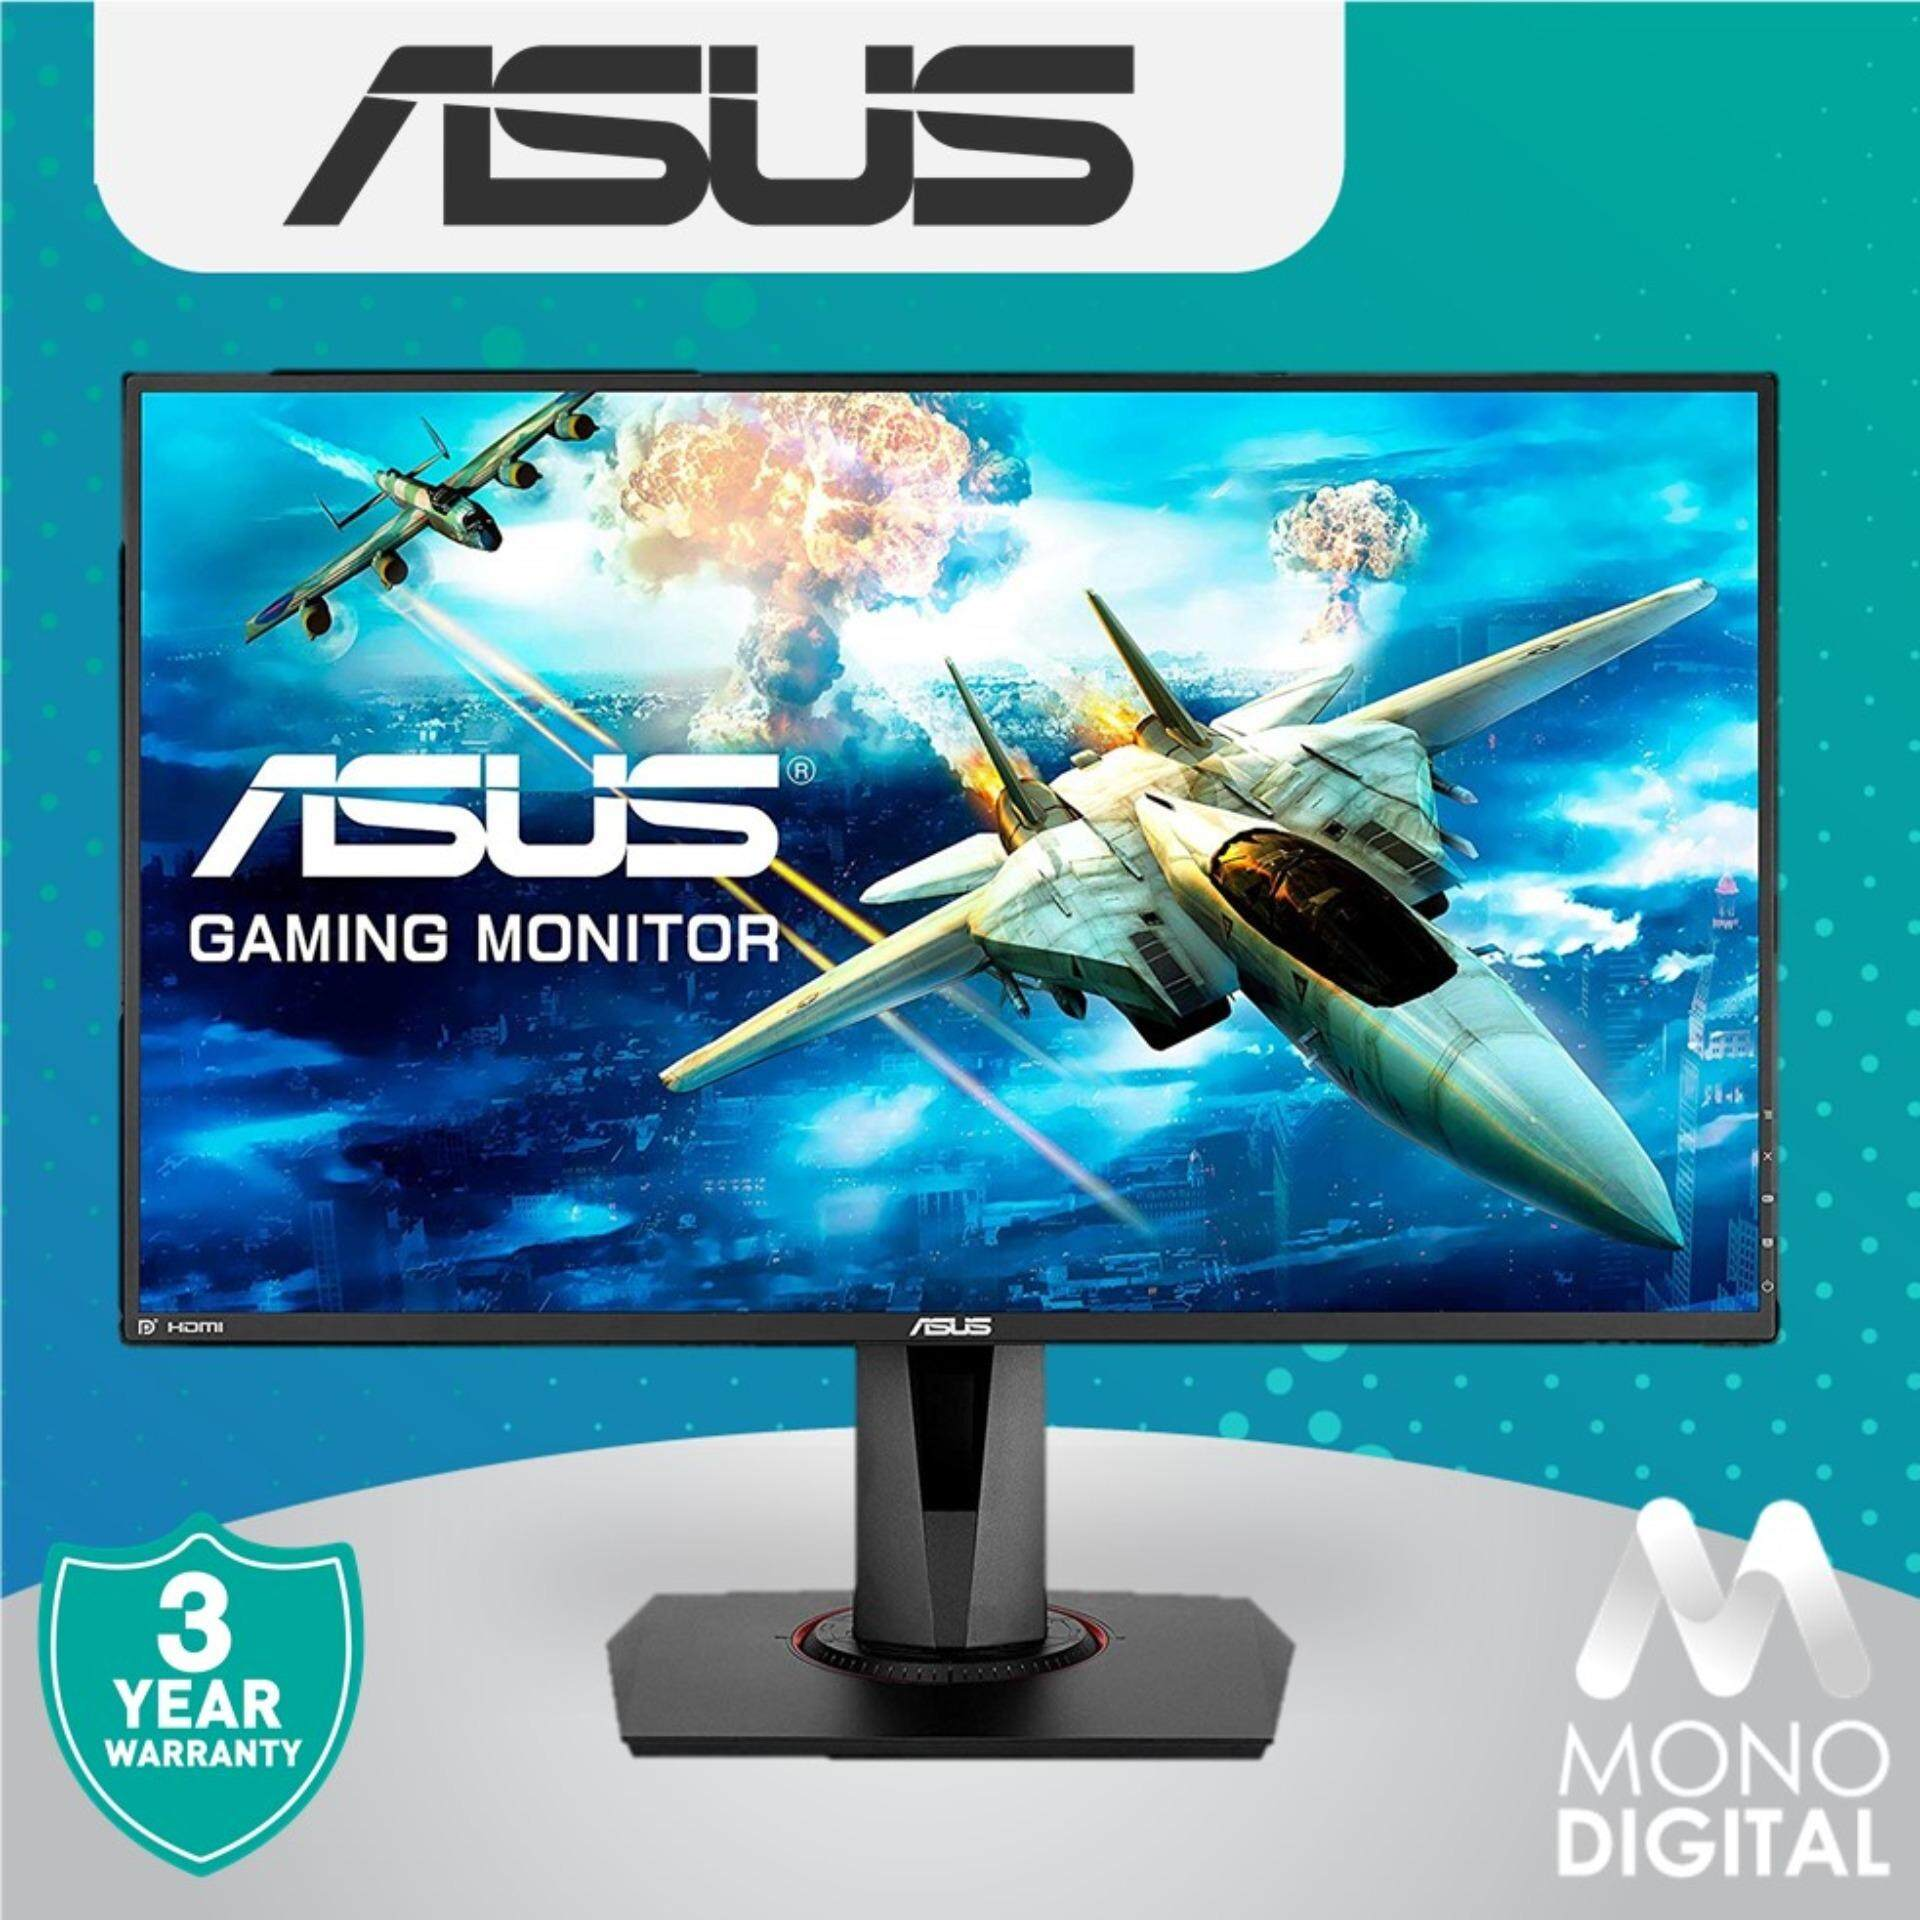 ASUS VG278QR Gaming Monitor - 27inch, Full HD, 0.5ms*, 165Hz, G-SYNC Compatible, Adaptive Sync Malaysia